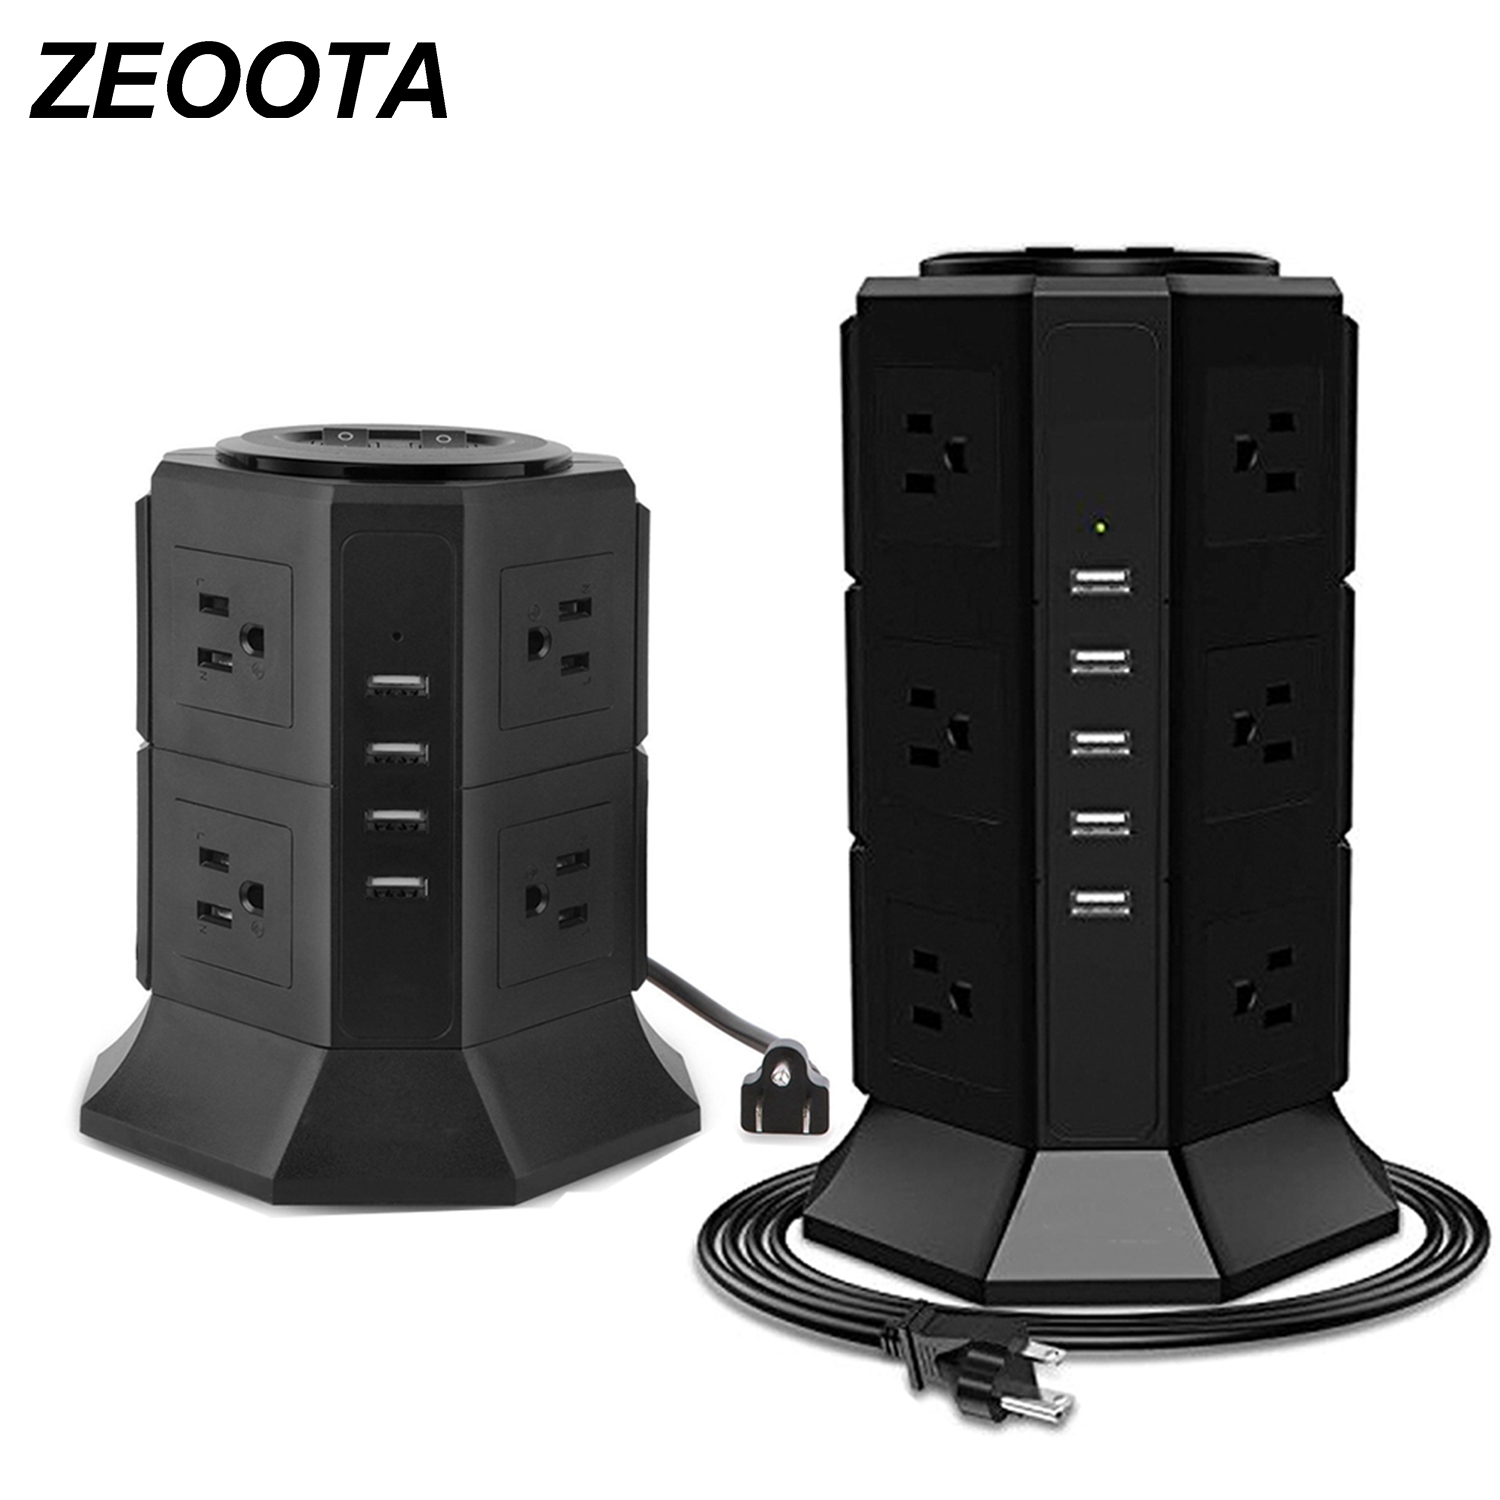 Power Strip Tower 12 US Outlet Surge Protector Electric Charging Station with 5 USB 6.5ft Extension Cord for Phones Tablets